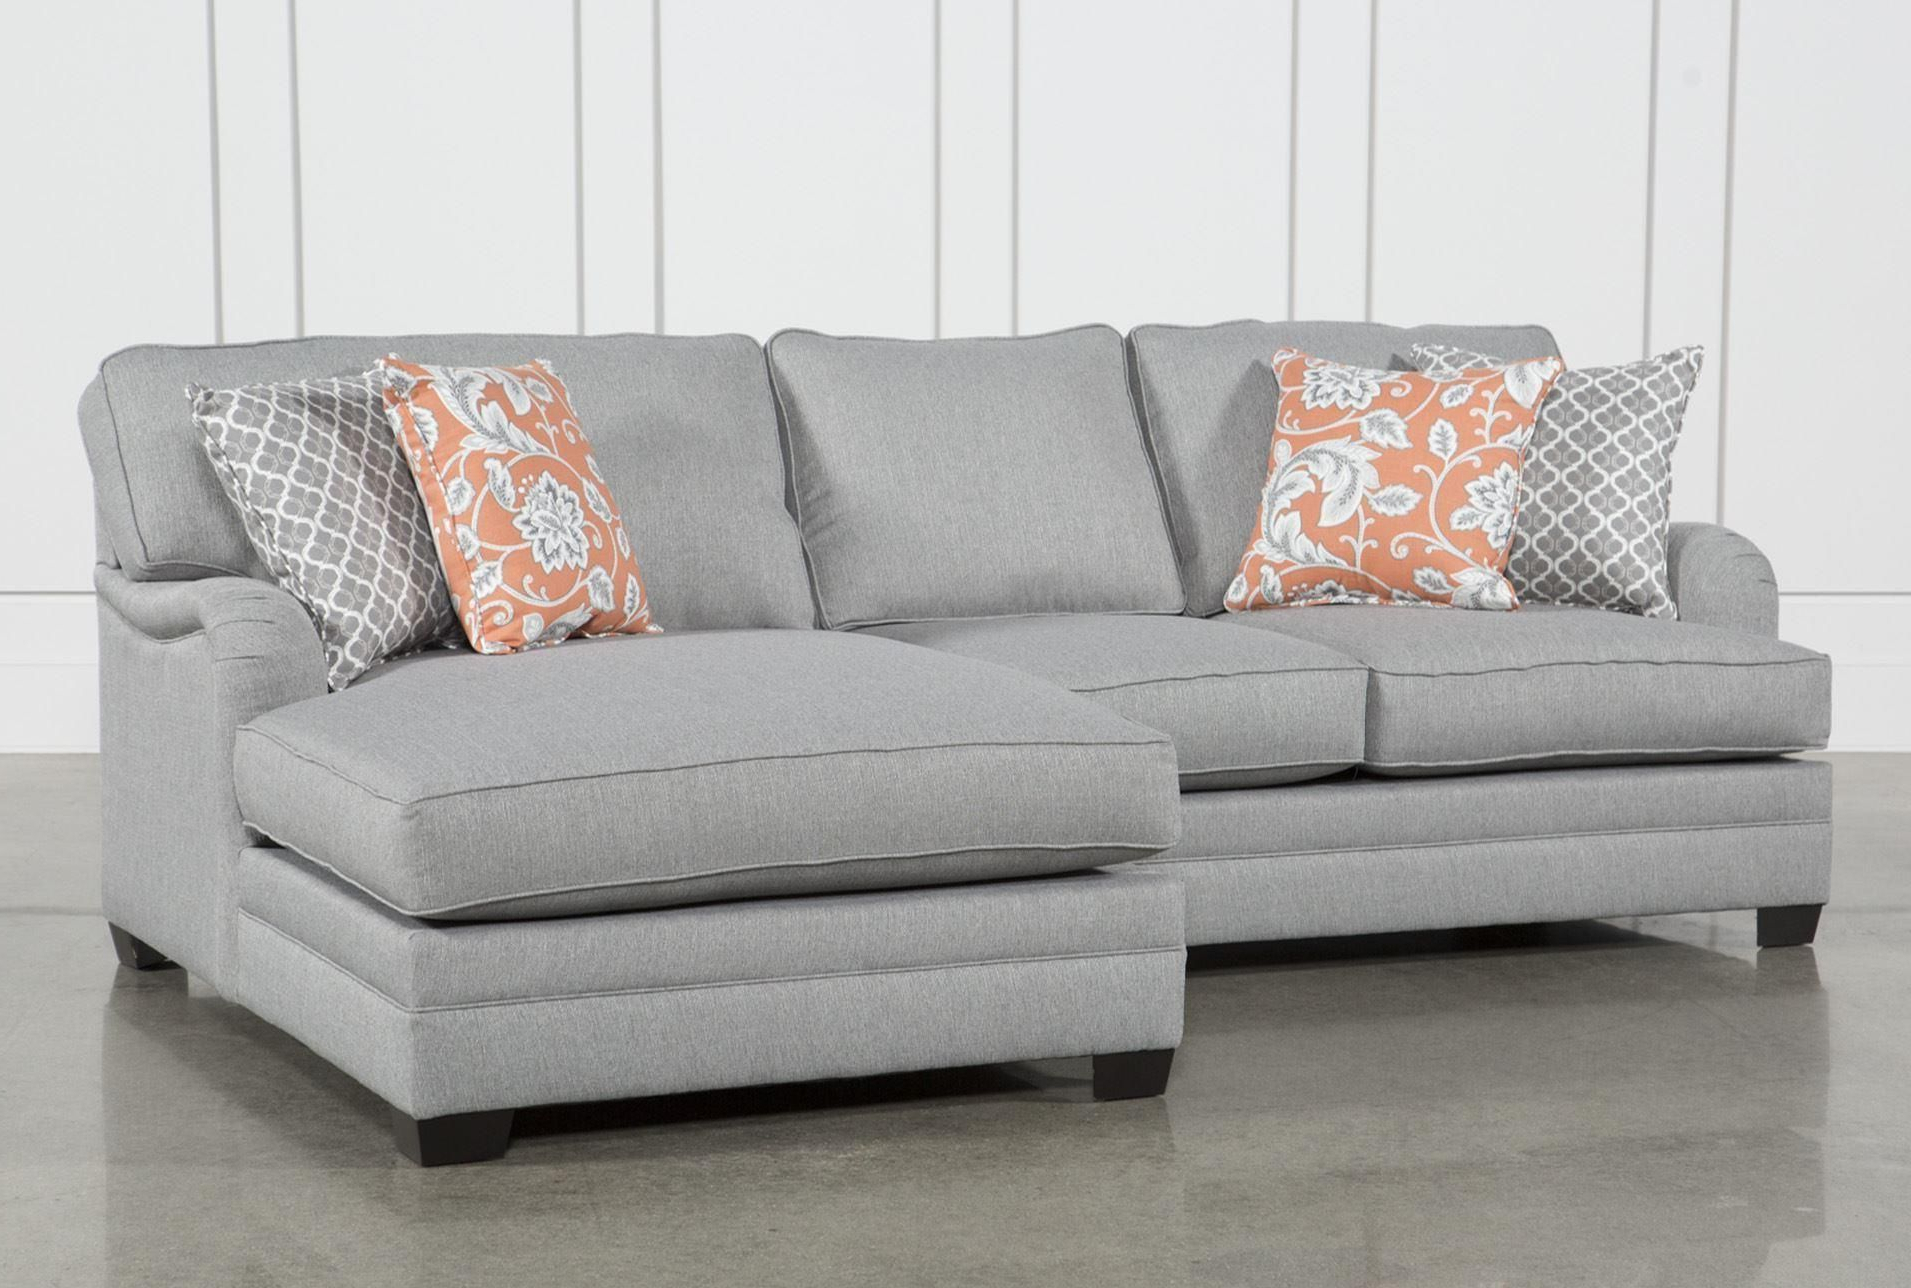 Preferred Mcculla Sofa Sectionals With Reversible Chaise For Marissa 2 Piece Sectional W/raf Chaise (View 15 of 20)